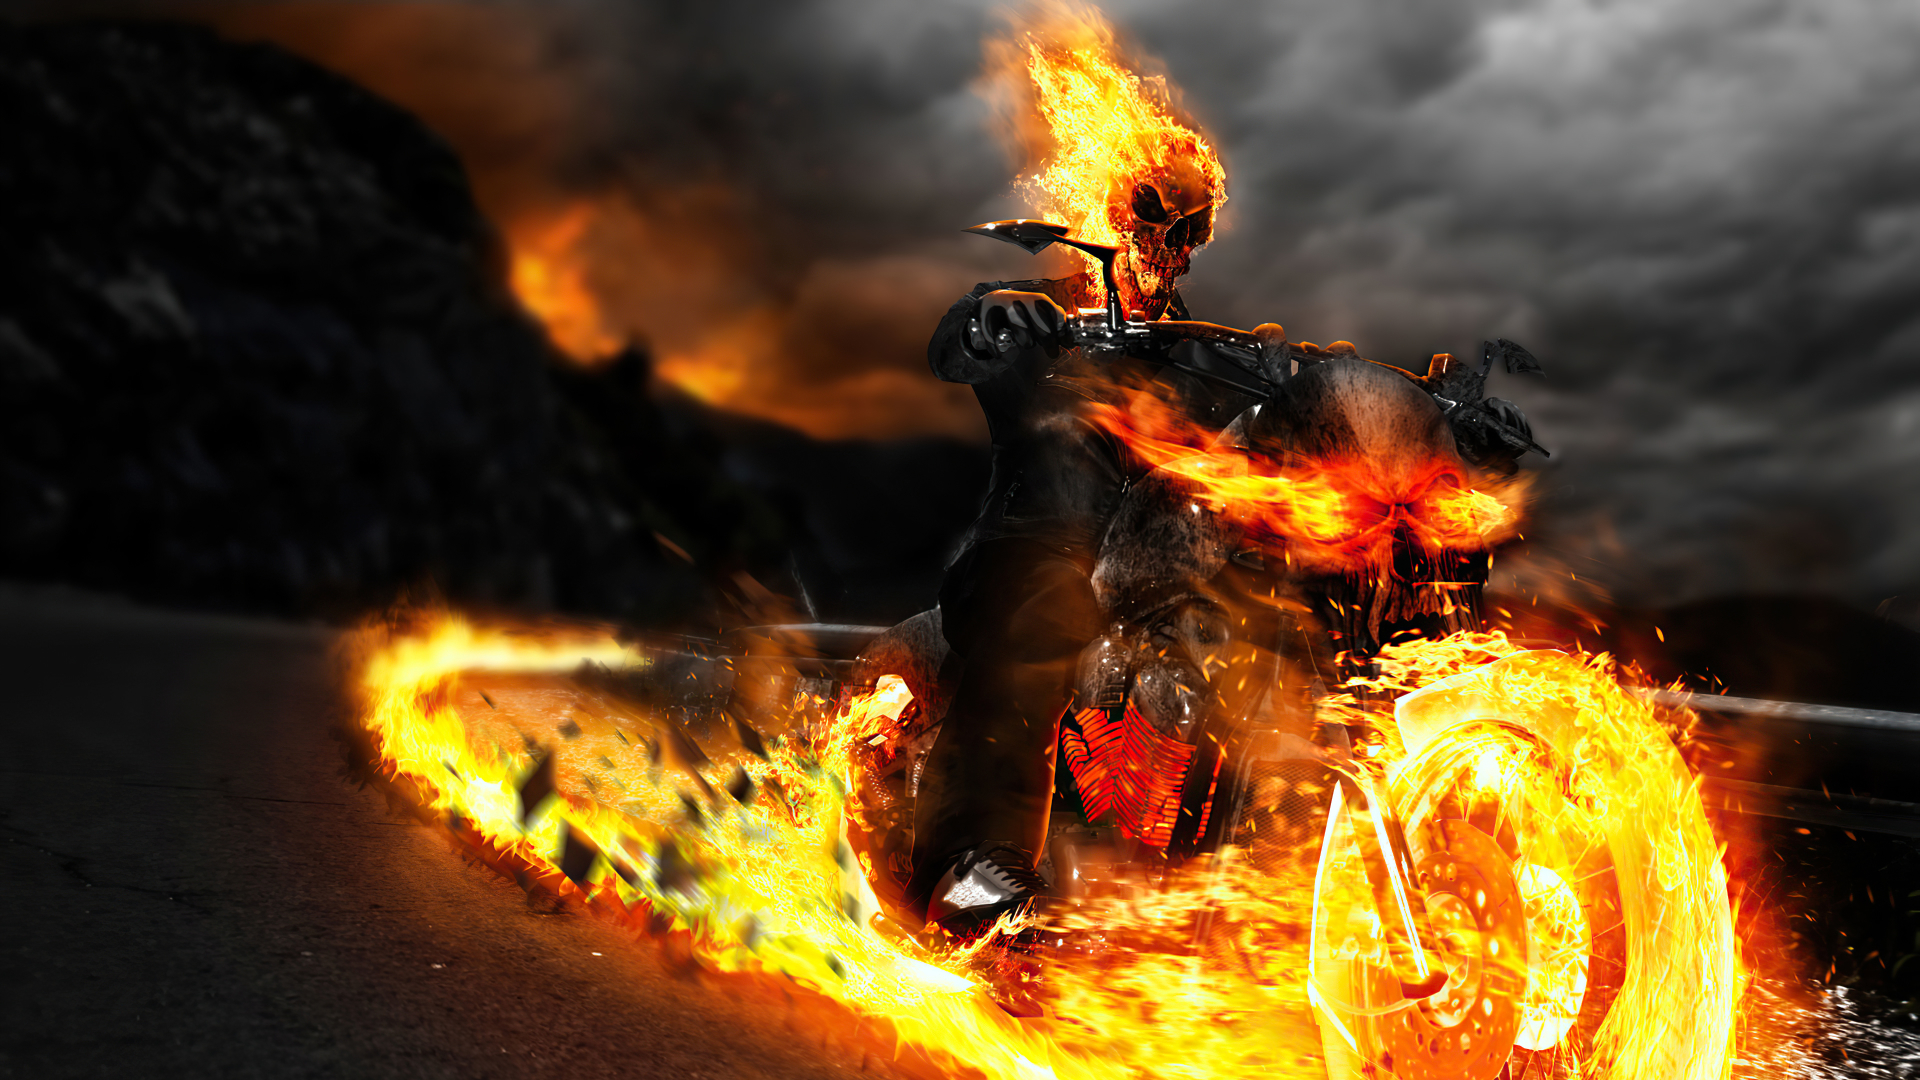 1920x1080 Ghost Rider 4k Mcu 1080p Laptop Full Hd Wallpaper Hd Superheroes 4k Wallpapers Images Photos And Background